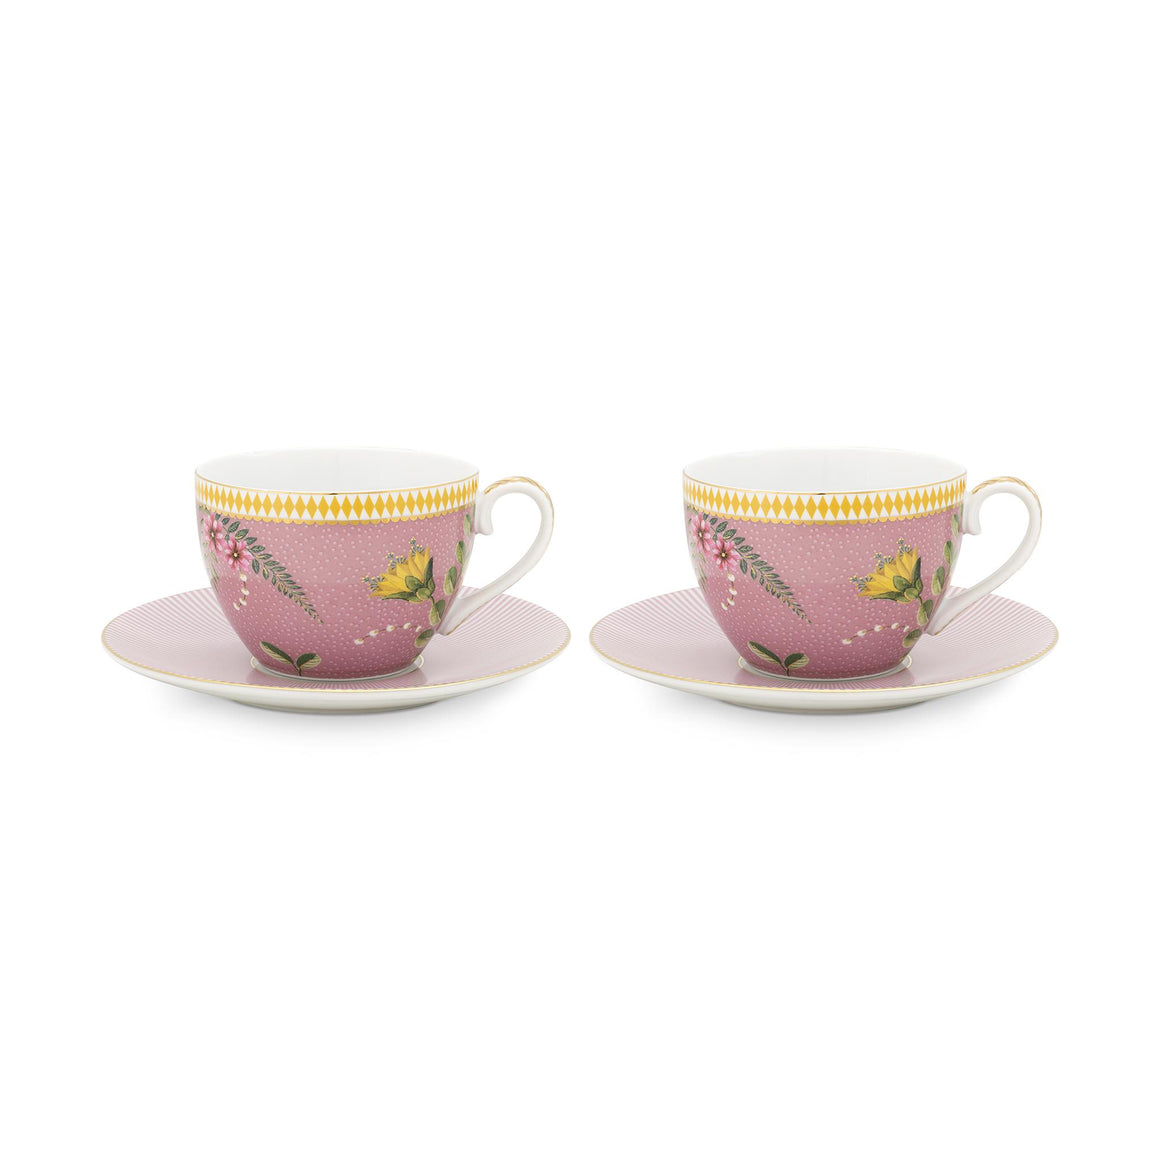 La Majorelle Double Teacup Set 280 Ml., Pink